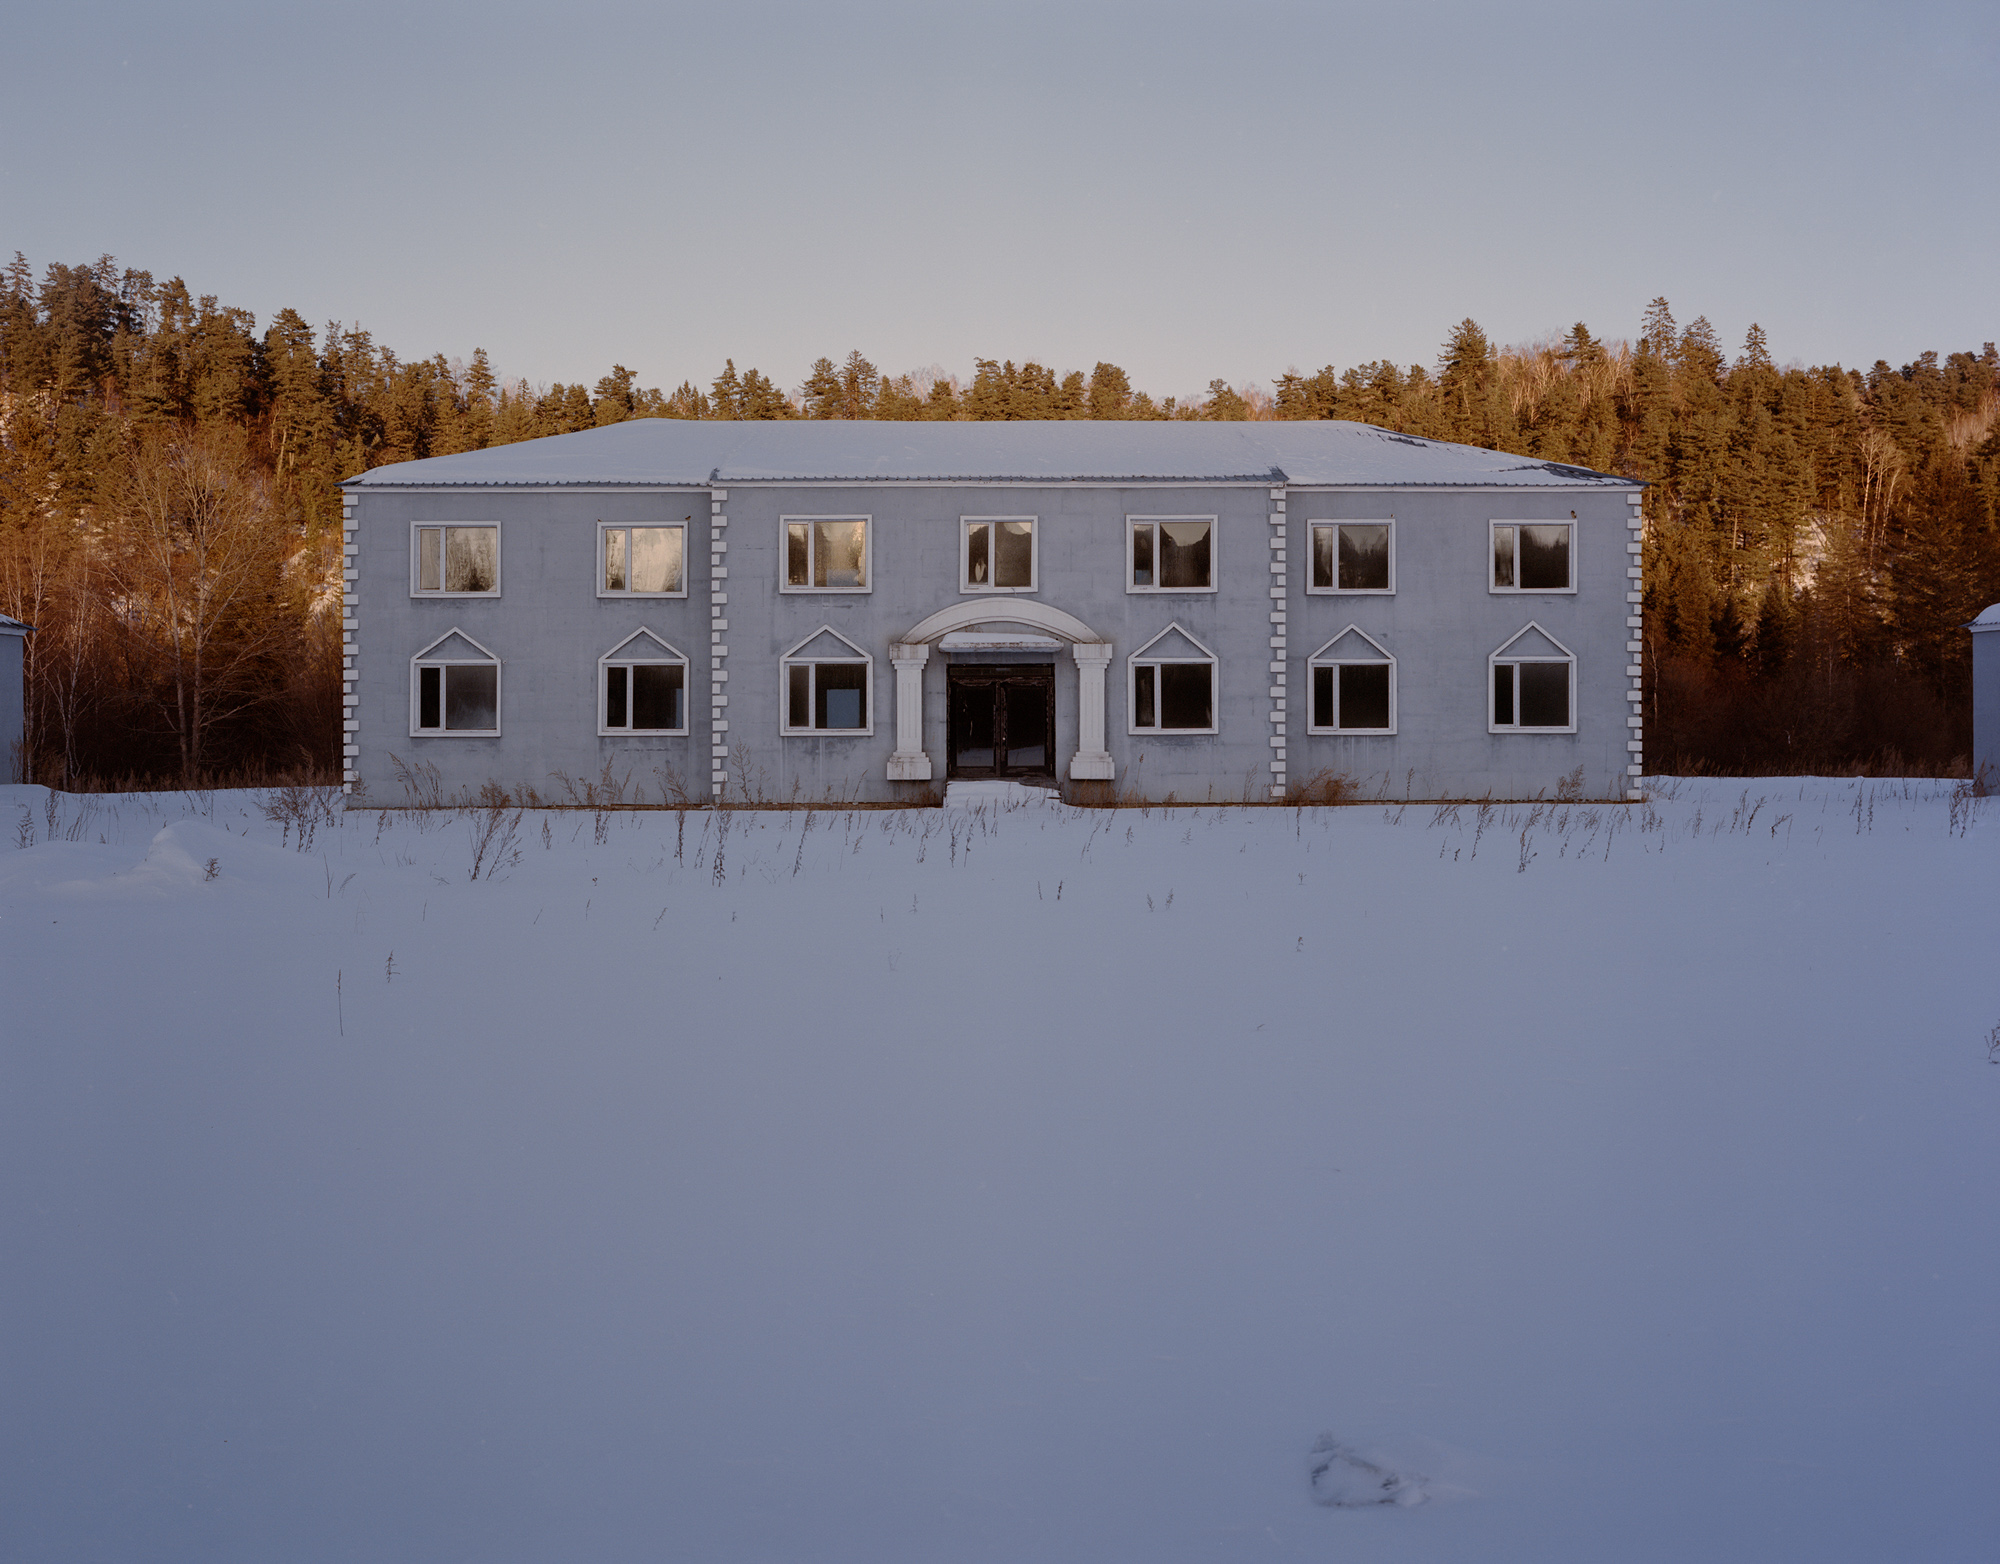 An empty office building of the local Forestry Bureau in Yichun. Beginning in 2014, China banned commercial logging in state-owned natural forests in Heilongjiang province. As a result, this office building was left unused after its construction was completed in 2013.